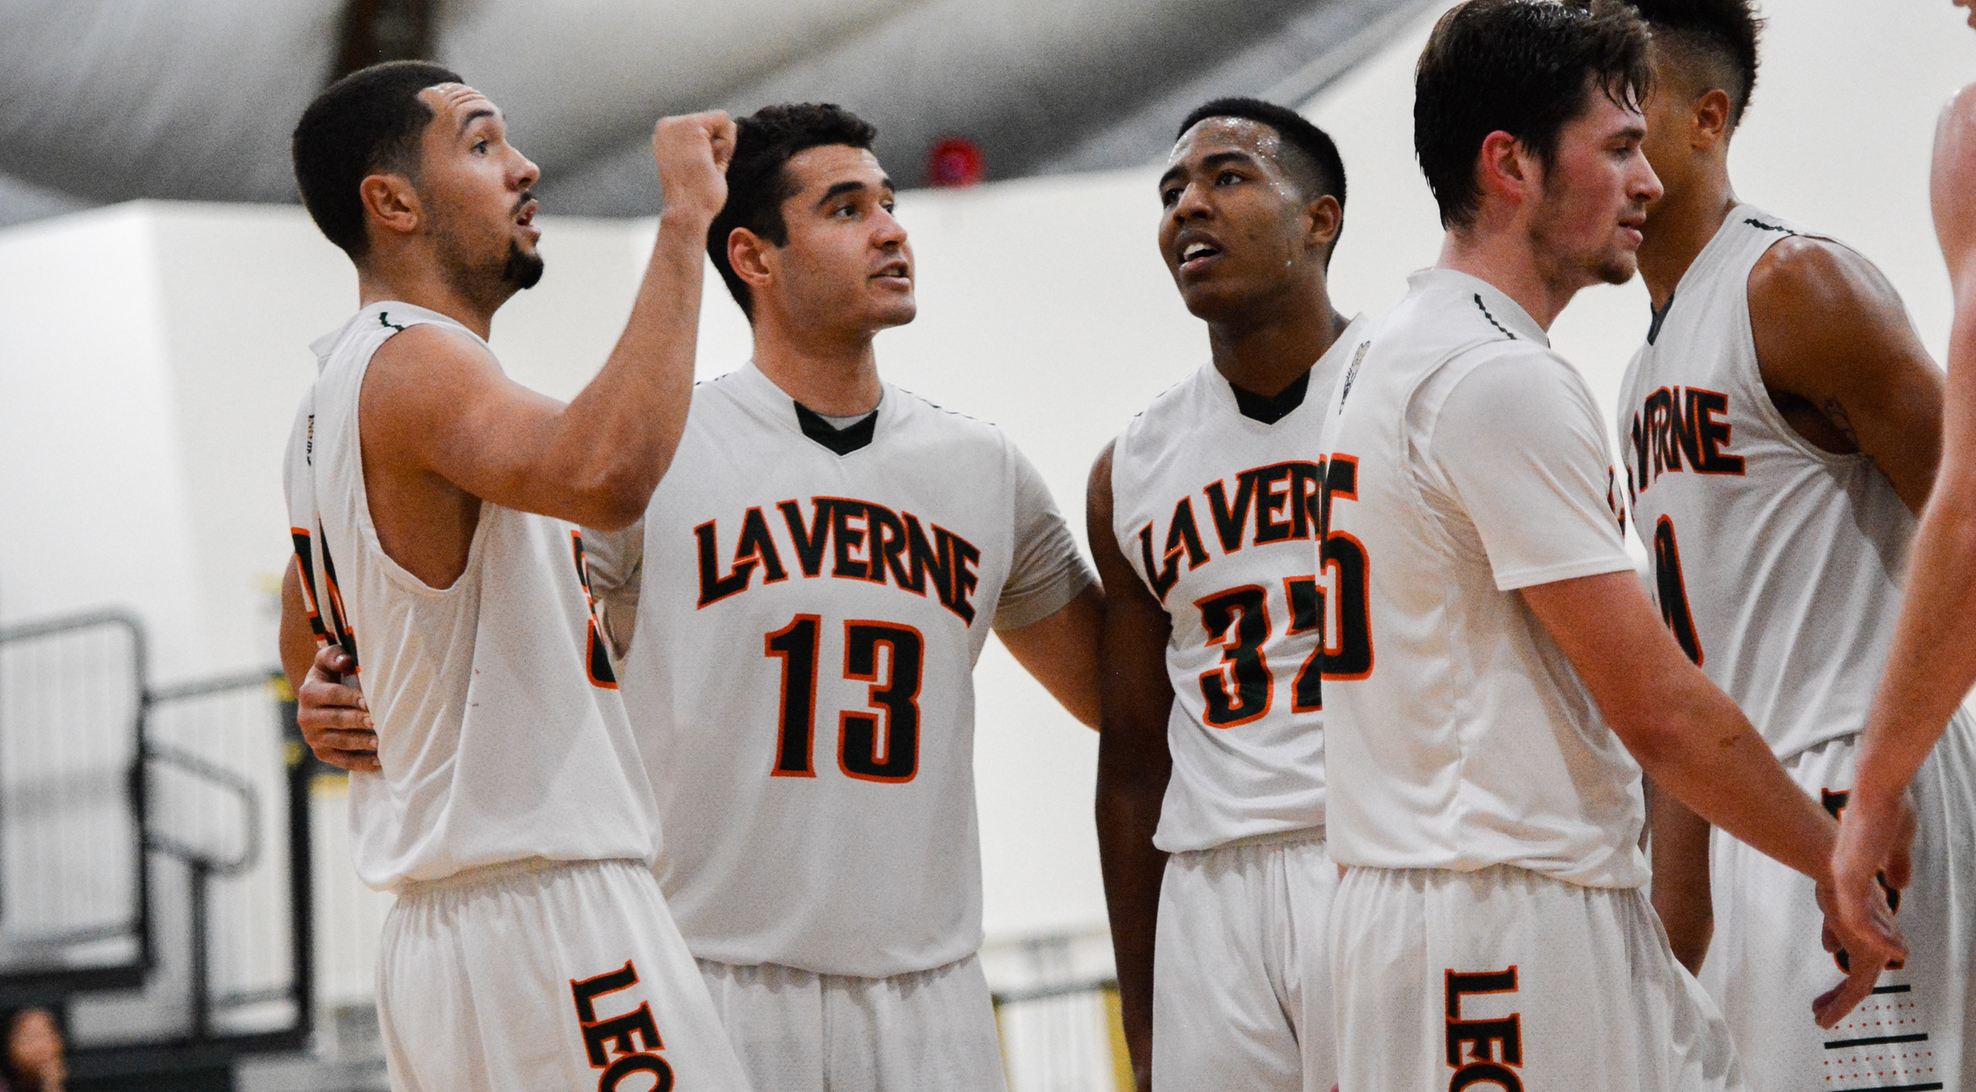 Stokes, Arnold carry La Verne past Willamette 88-87